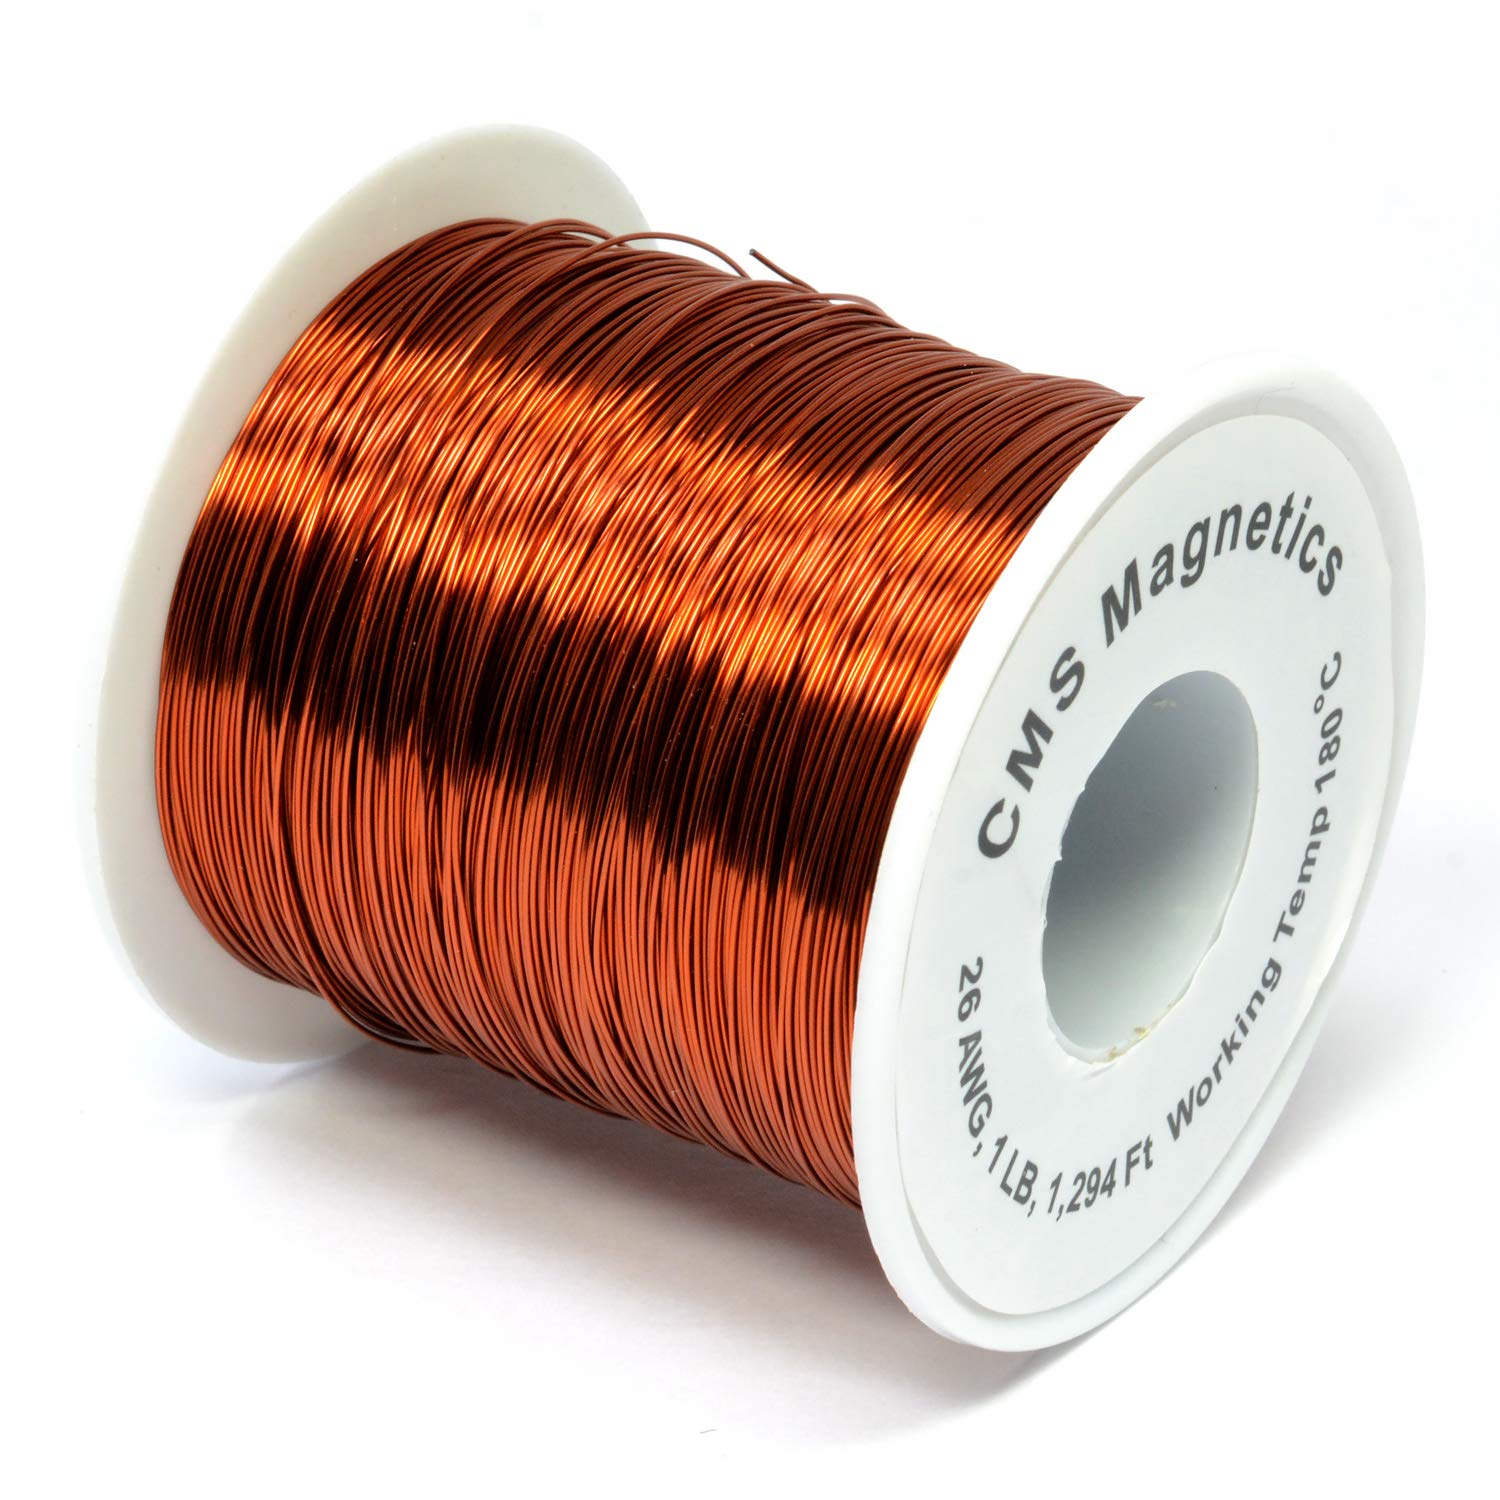 One Pound of 36 Gauge Magnet Wire for Science